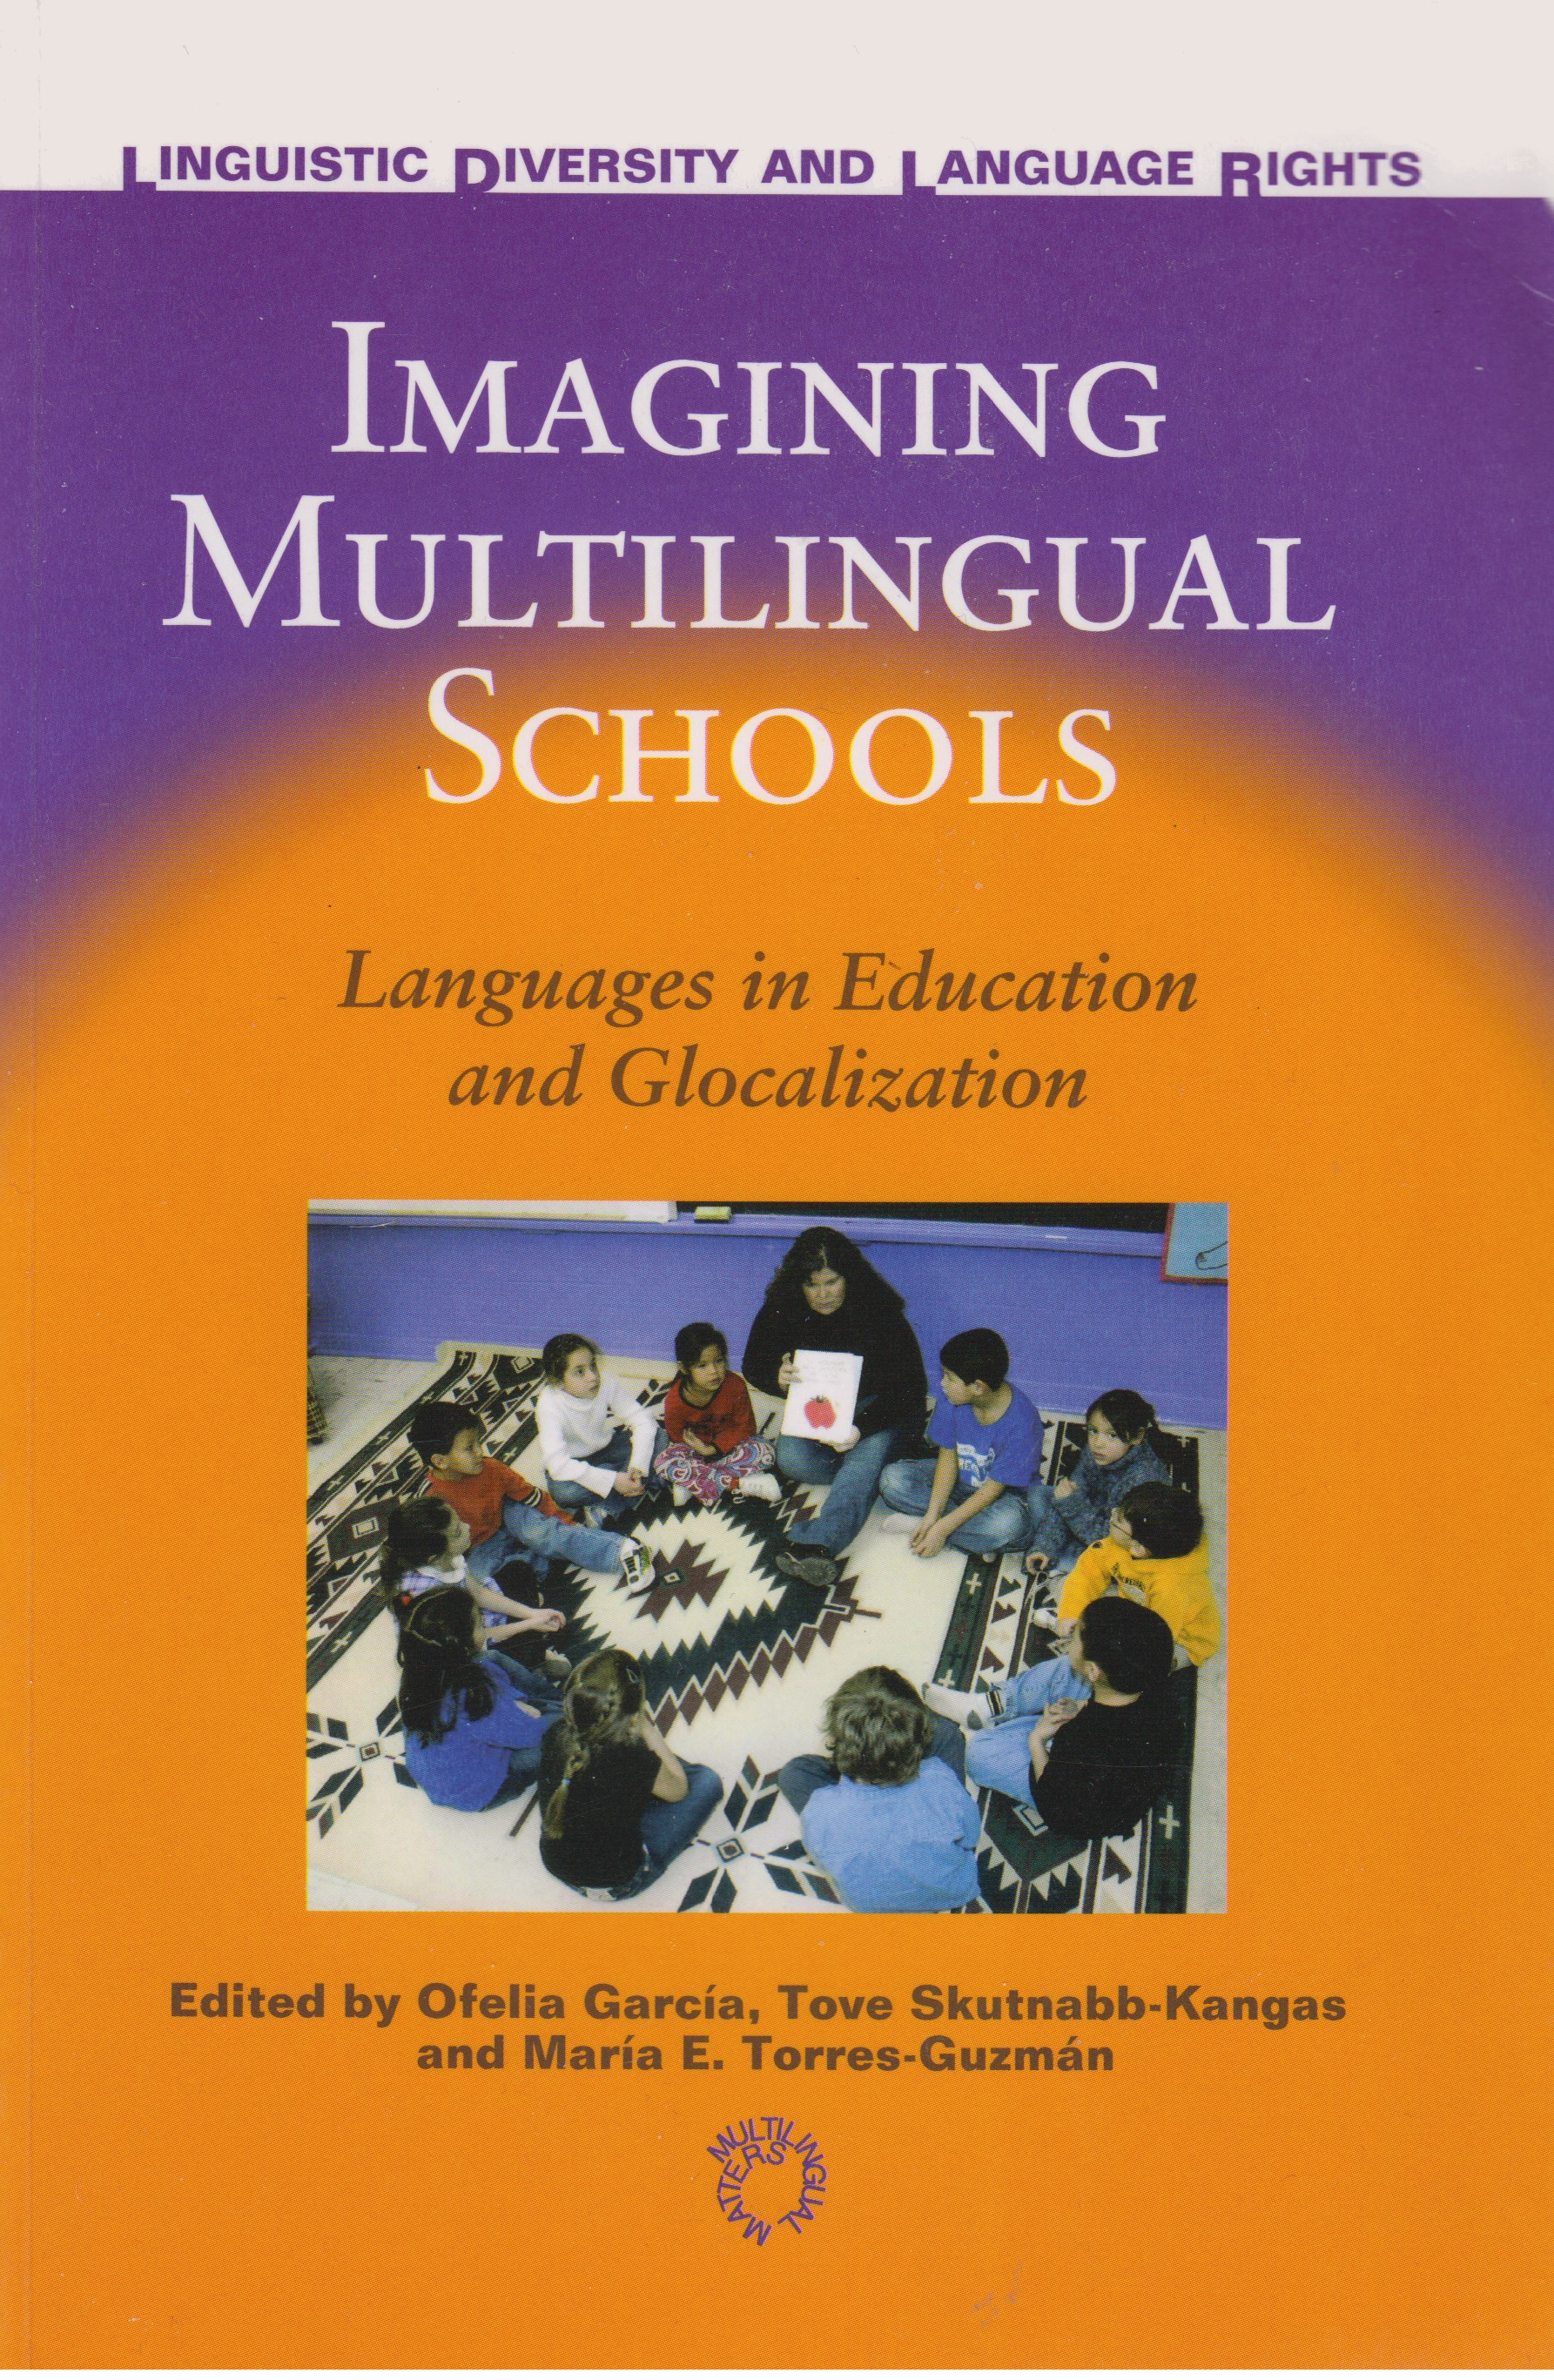 García, Ofelia, Skutnabb-Kangas, Tove & Torres Guzmán, María (eds) (2006). Imagining Multilingual Schools: Languages in Education and Glocalization. Series Linguistic Diversity and Language Rights. Clevedon, UK: Multilingual Matters. 332 pp. See http://www.multilingual-matters.com/display.asp?K=9781853598951 (visited: 07 April 2020) - Click here to open or close description